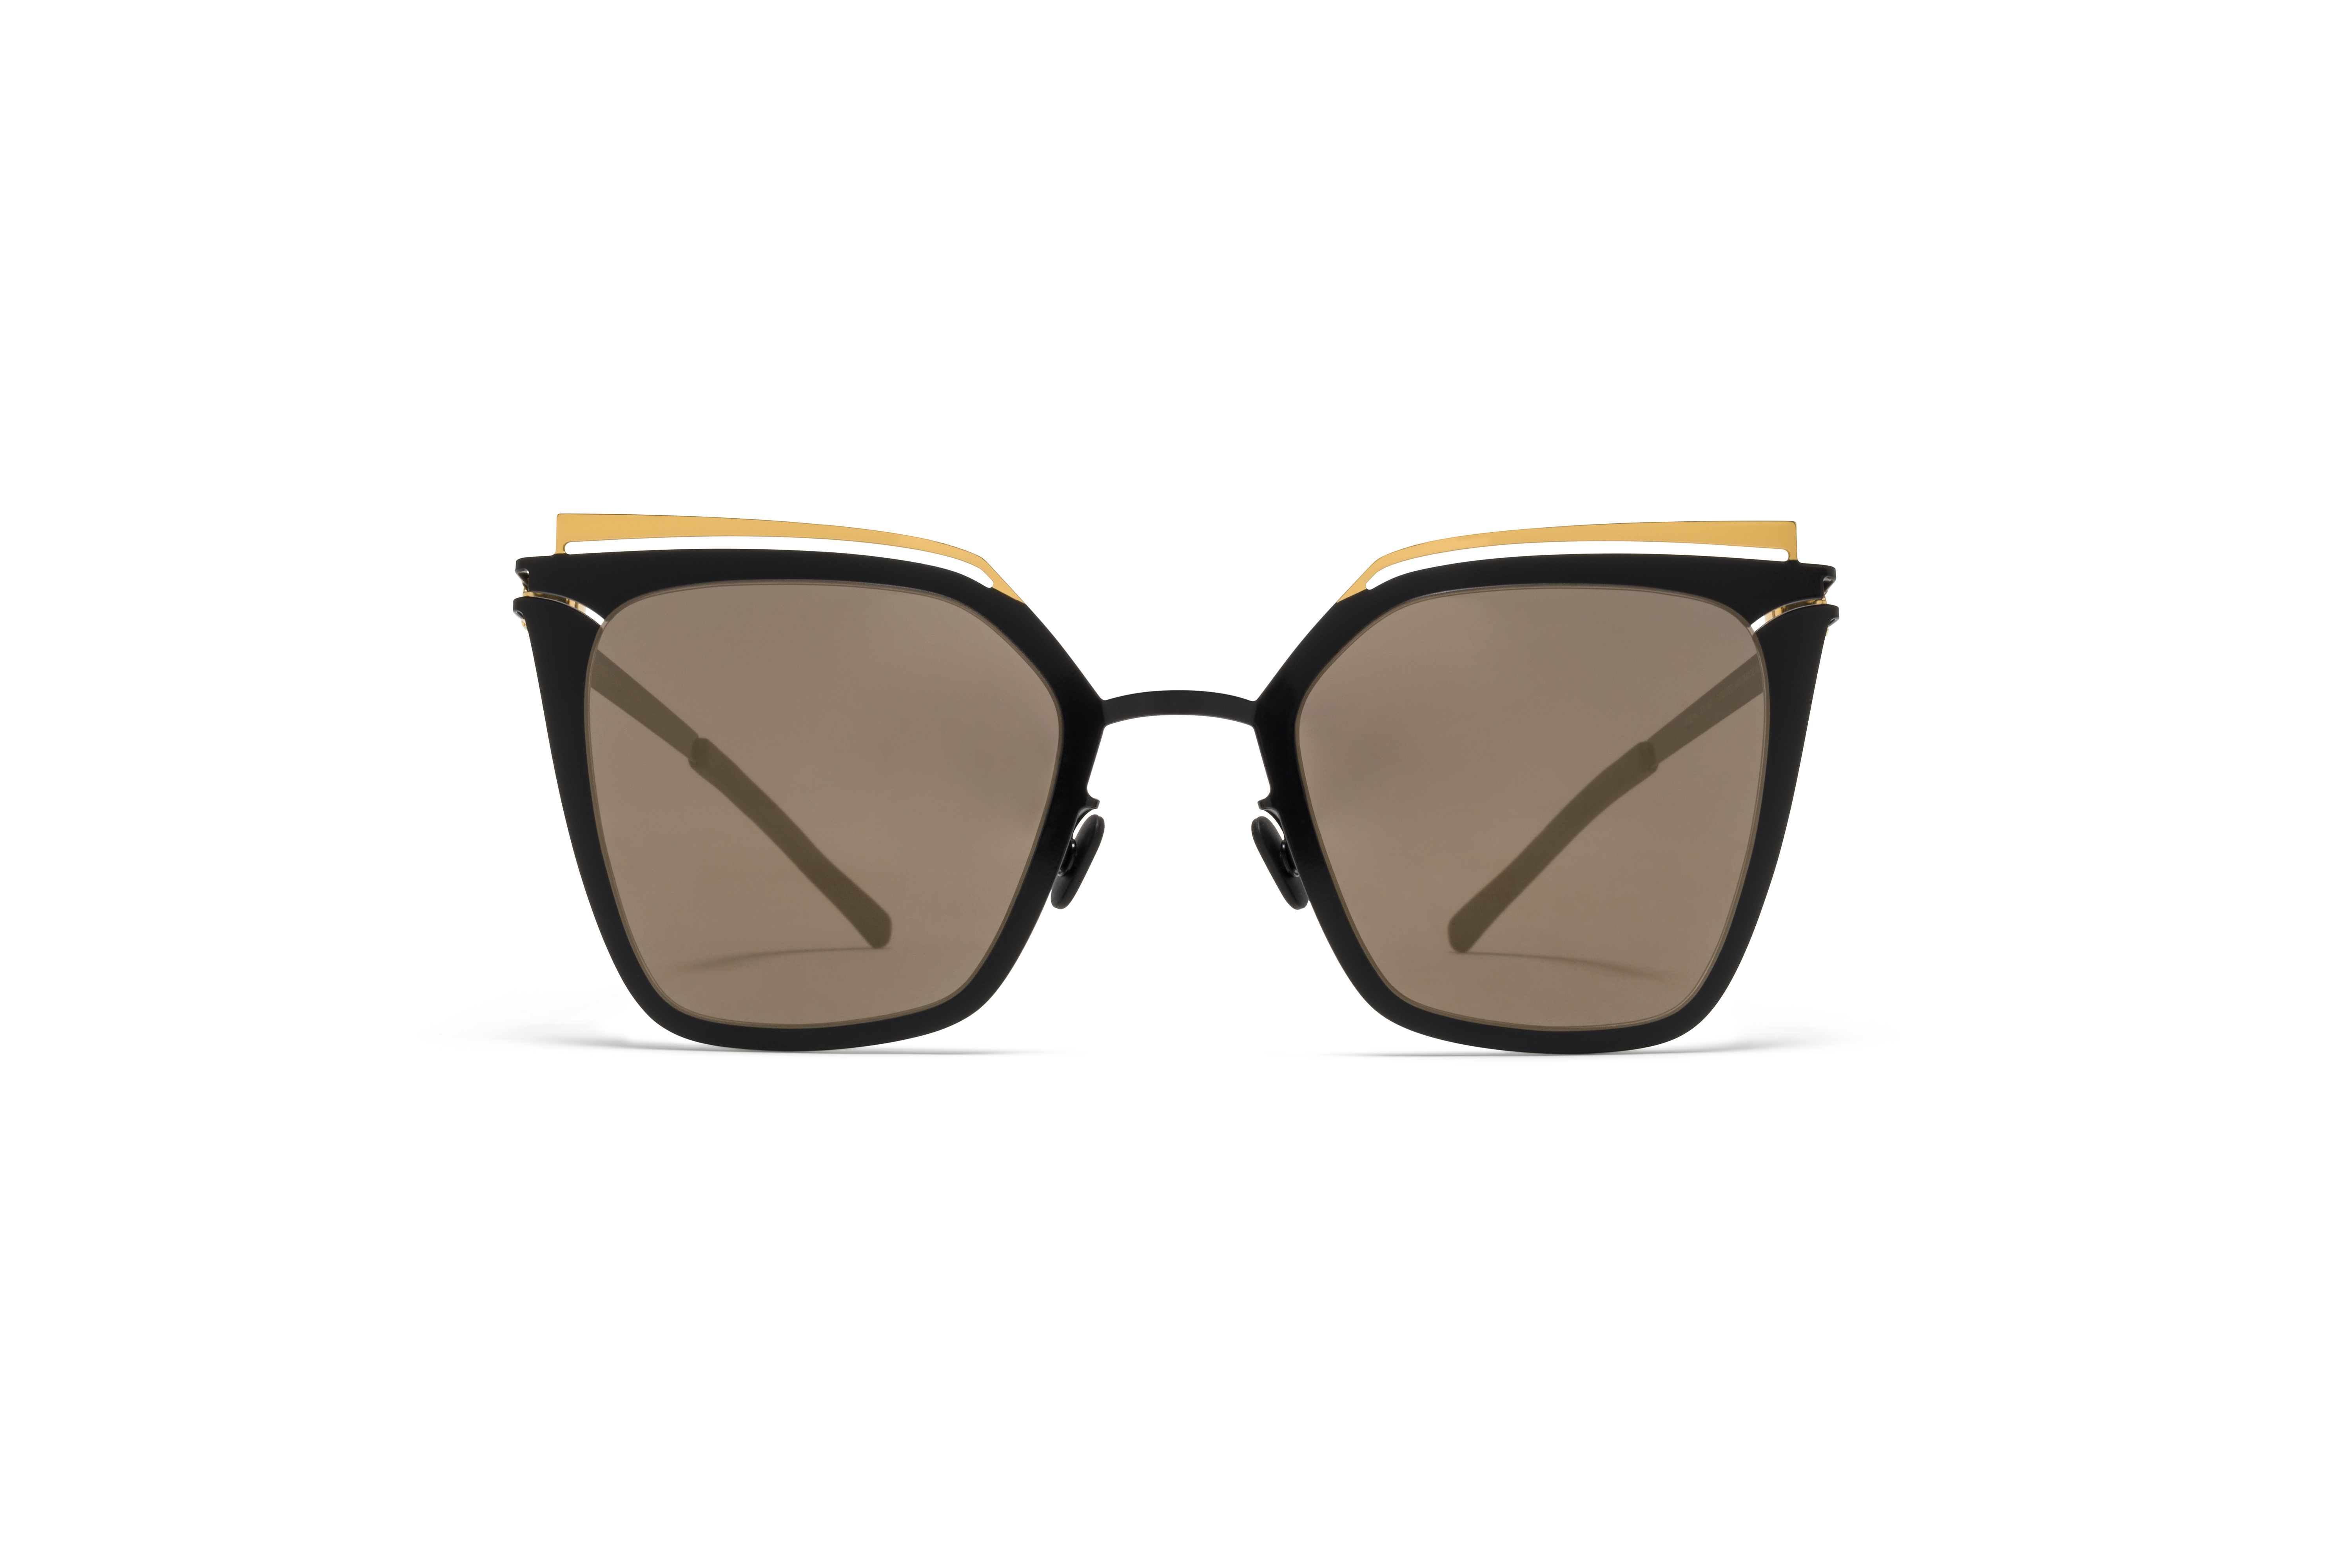 MYKITA Decades Sun Kendall Gold Jet Black Brillian59fb225f54fc4